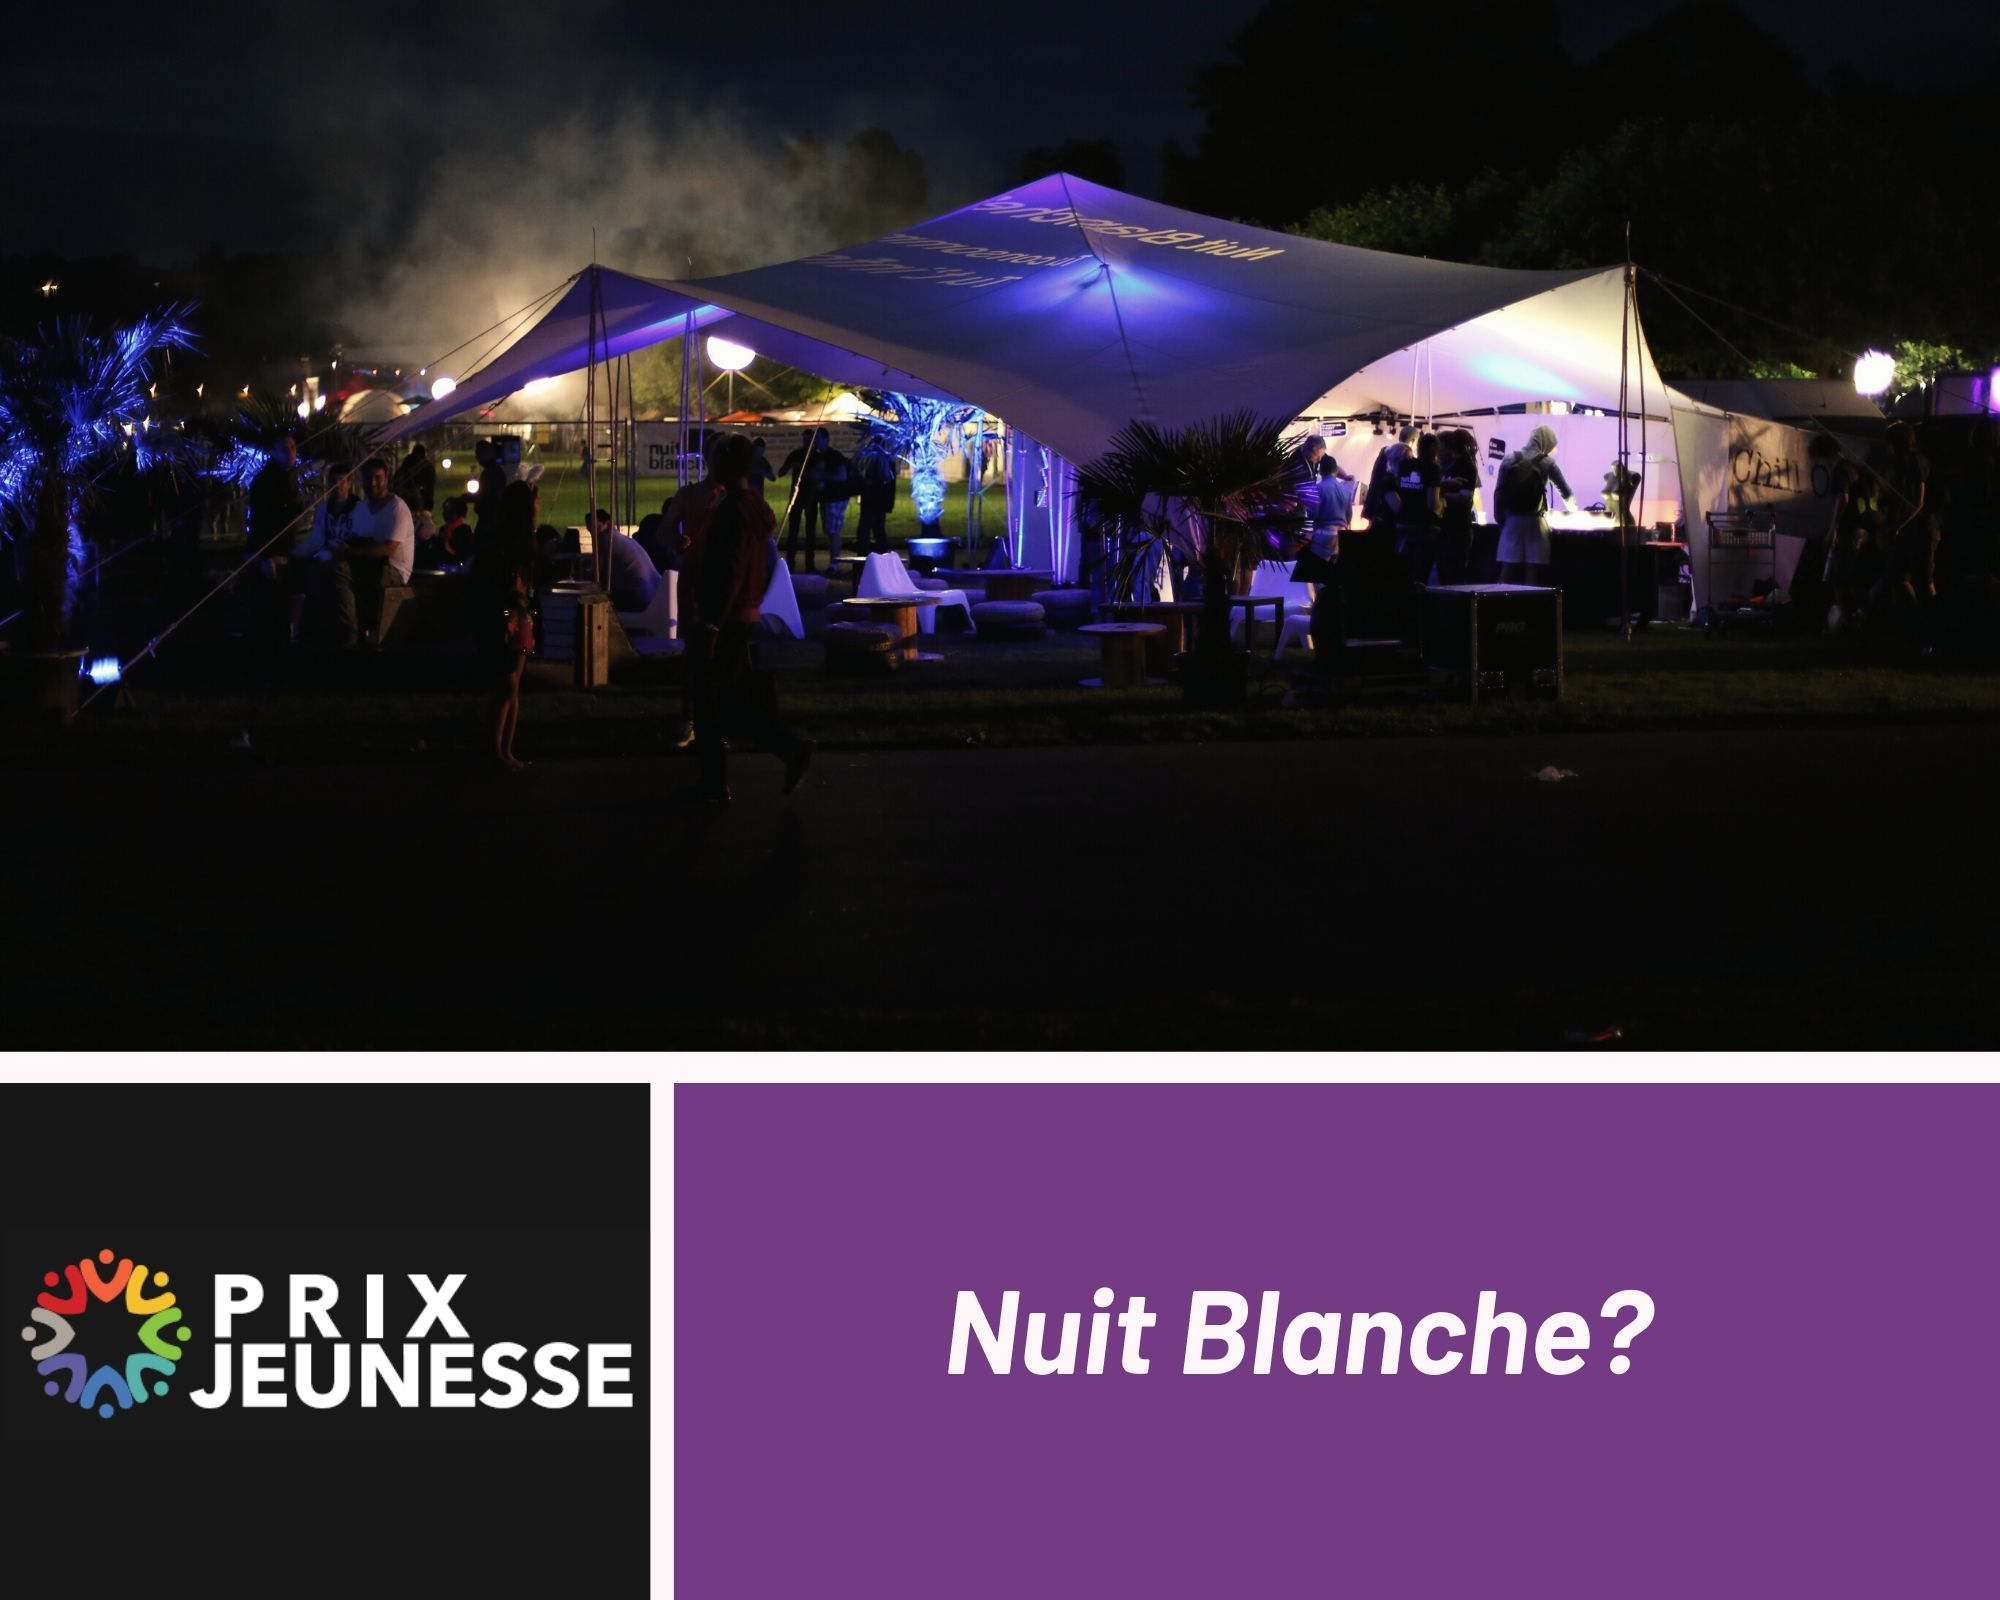 Candidat  Nuit Blanche?